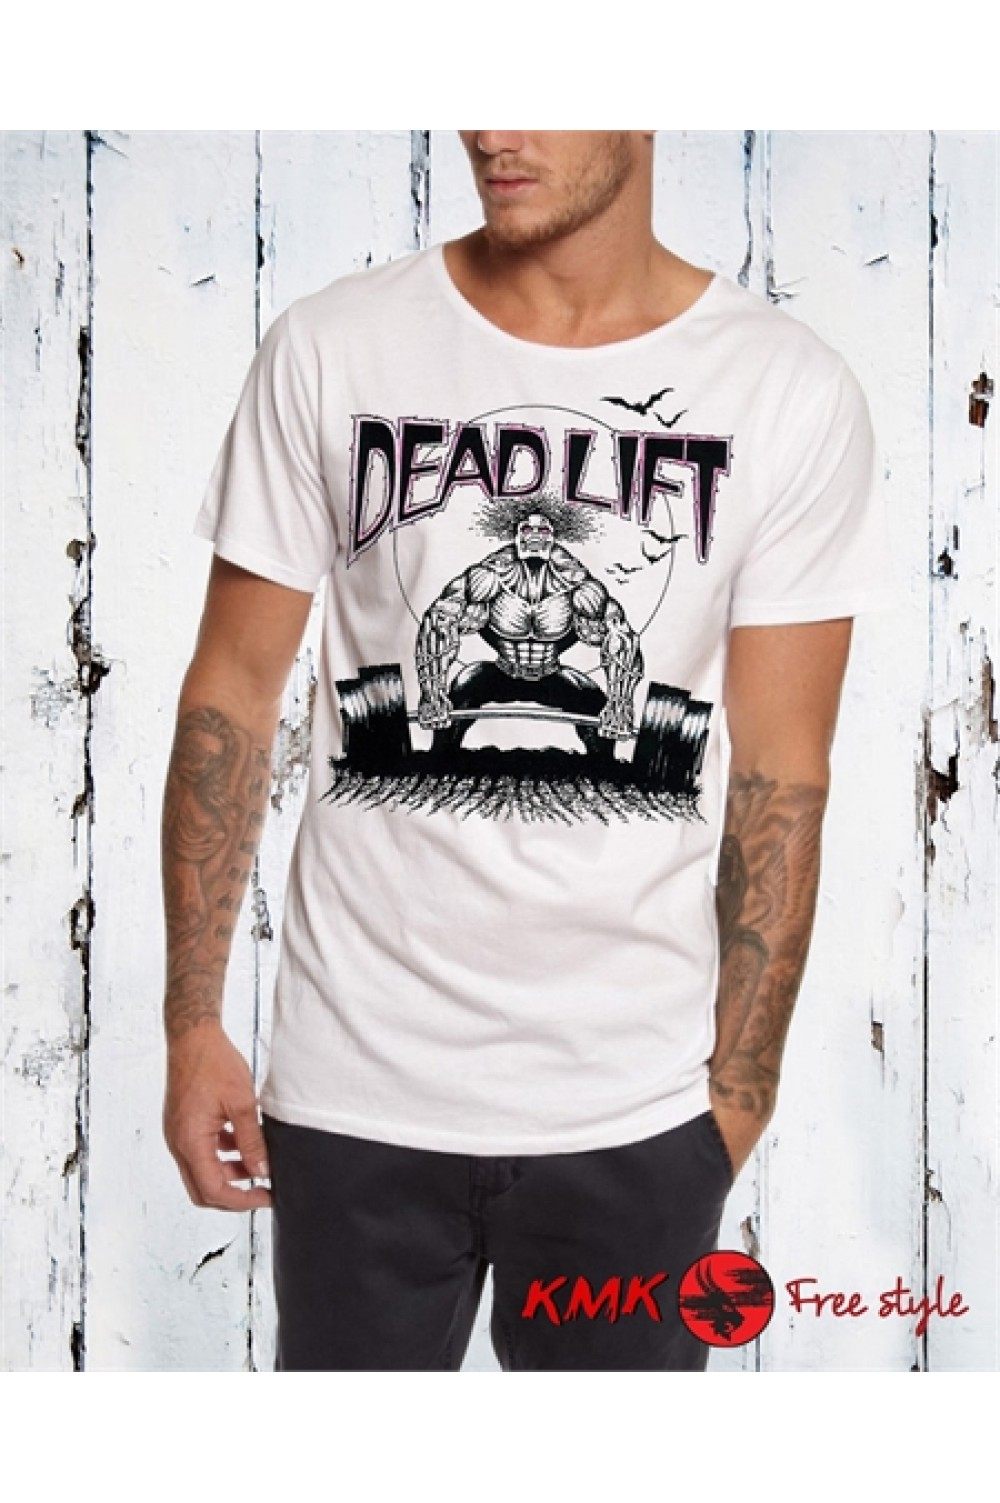 DEAD LIFT 2 Printed T shirt | Training Tanktop | Fitness Tee | Beast Mode Shirt